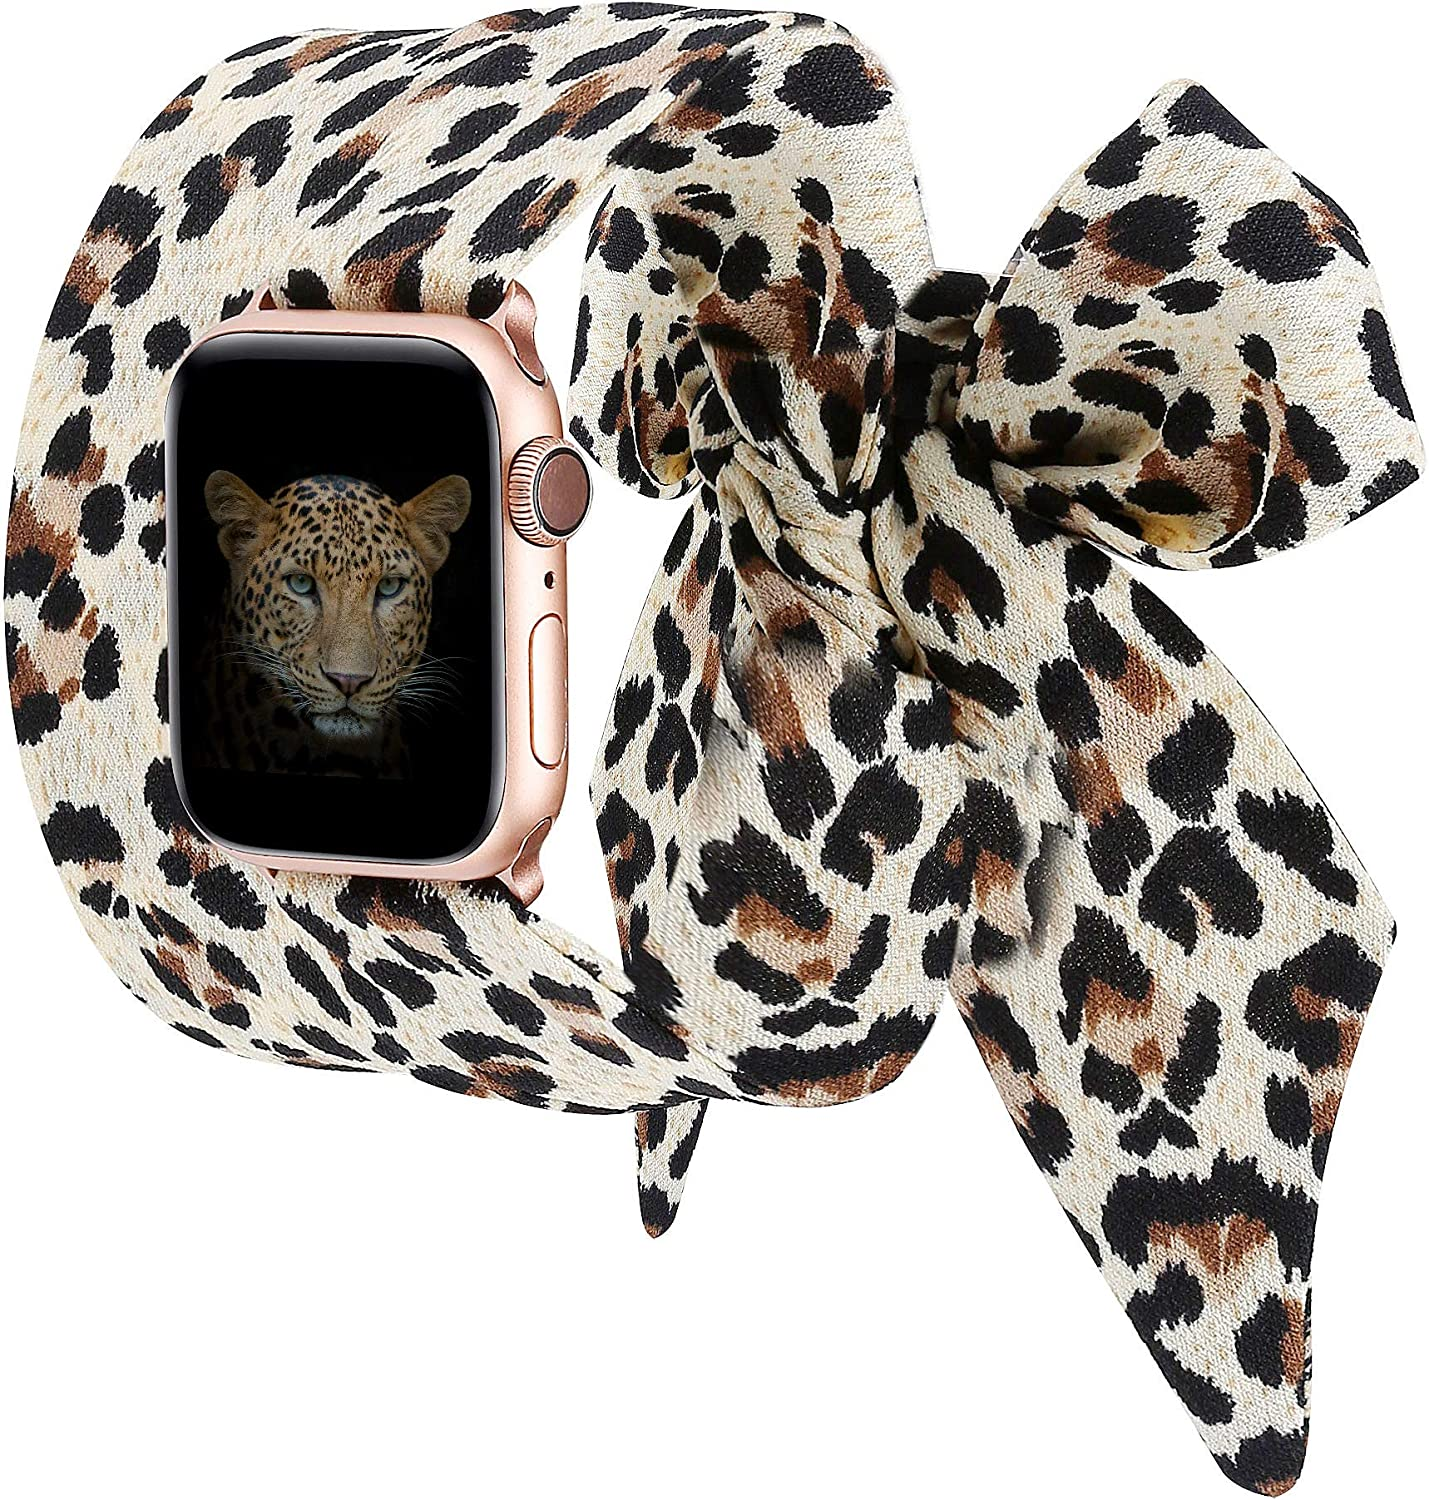 Wearlizer Compatible with Apple Watch Bands Scarf 38mm 40mm for iWatch Band Women Girls Fashion Scarf Replacement Wrist Strap for Apple Watch SE Series 6 5 4 3 2 1 - Leopard